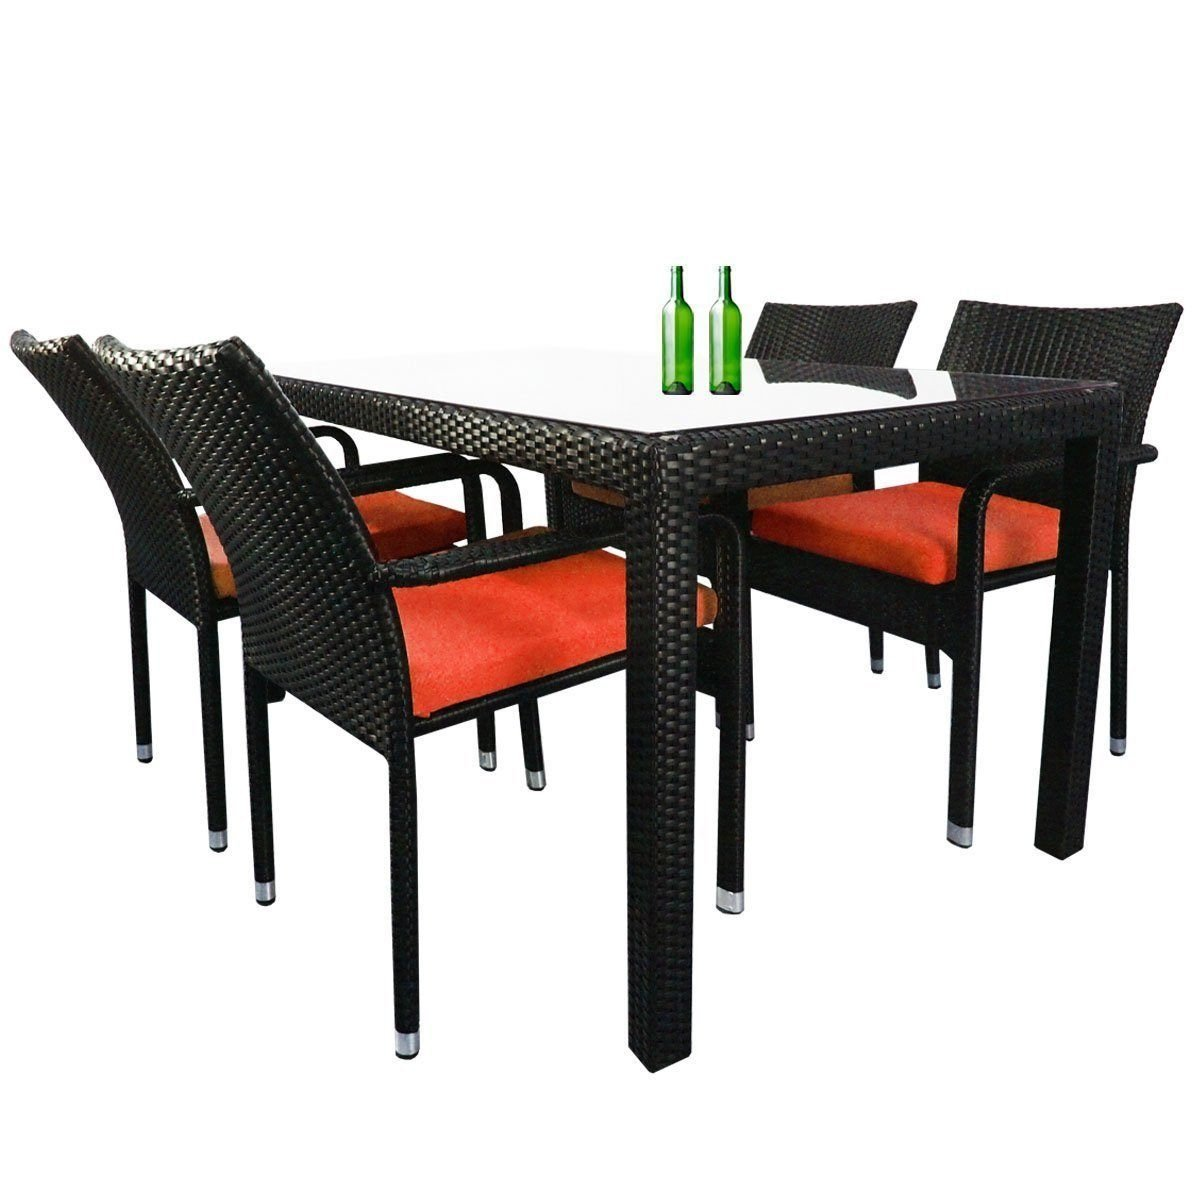 Boulevard 4 Chair Dining Set, Orange Cushions